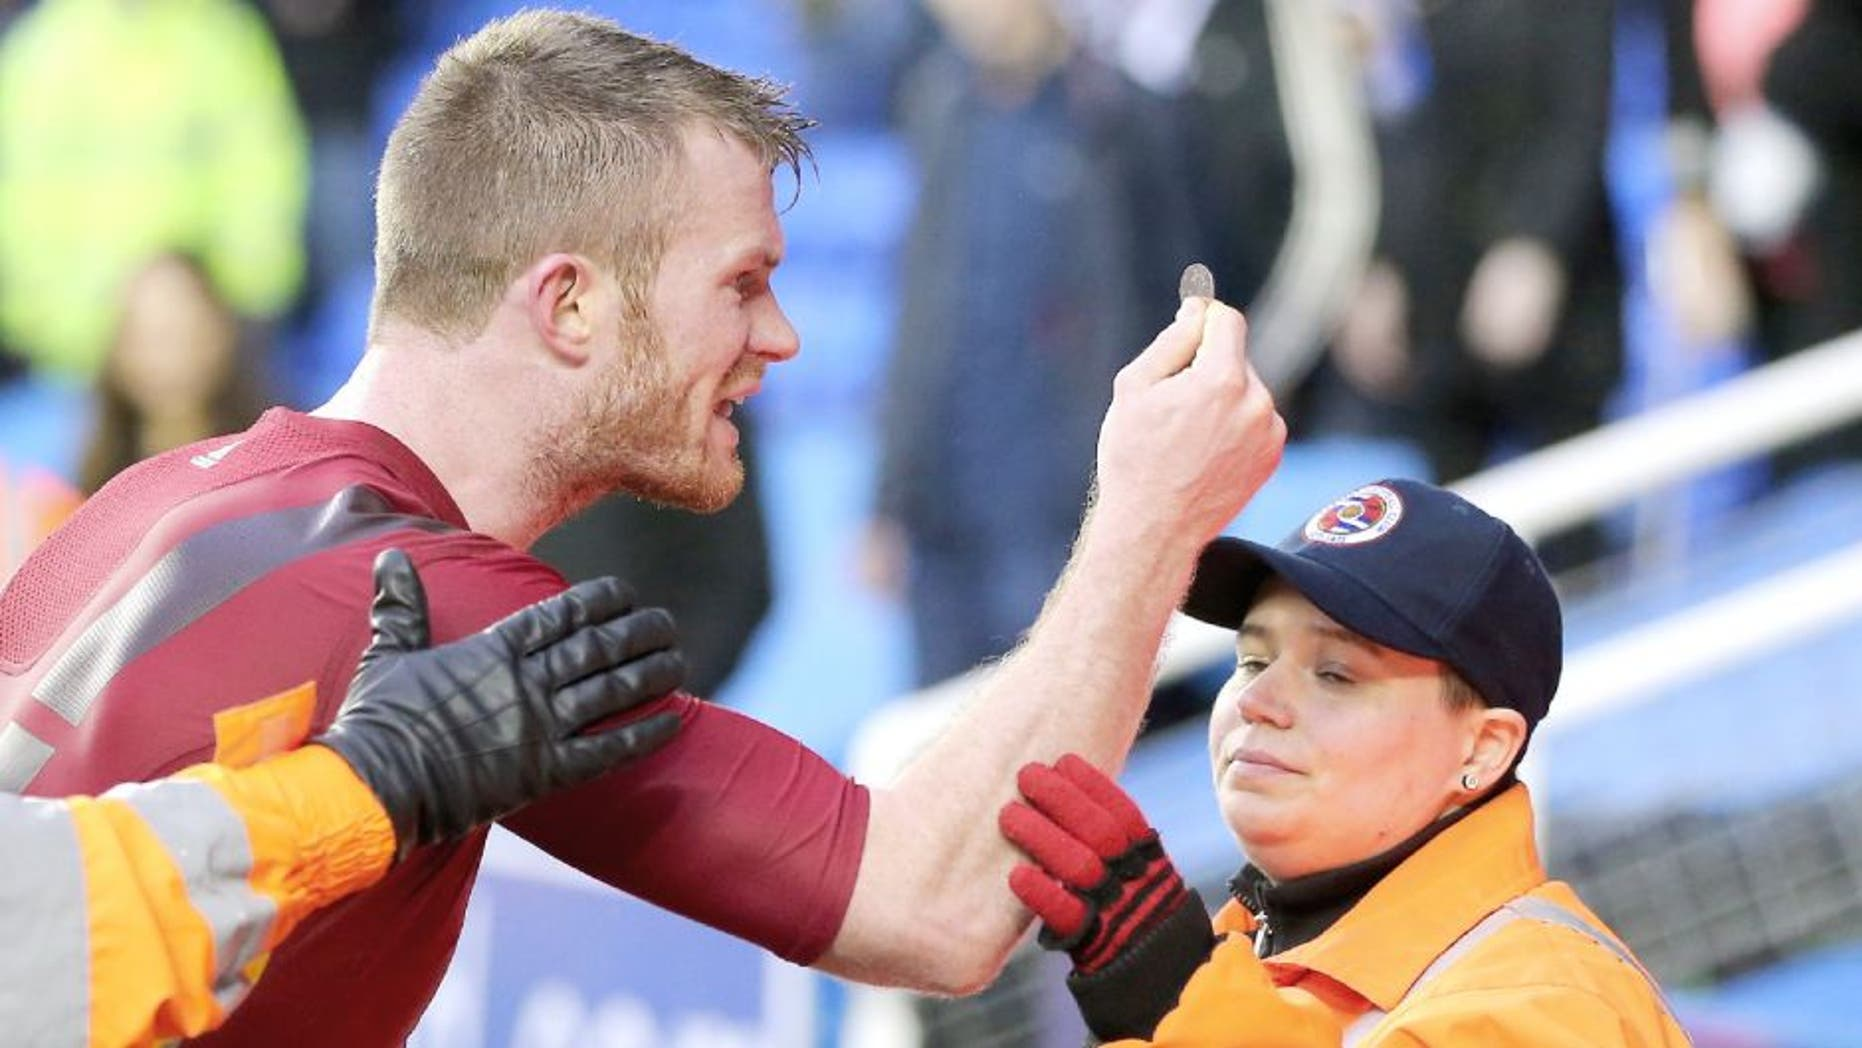 READING, ENGLAND - FEBRUARY 20: Chris Brunt of West Bromwich Albion is held back by stewards as he holds up the coin that was thrown at him by his own supporters after the Emirates FA Cup match between Reading and West Bromwich Albion at Madejski Stadium on February 20, 2016 in Reading, England. (Photo by Adam Fradgley - AMA/ Getty Images)